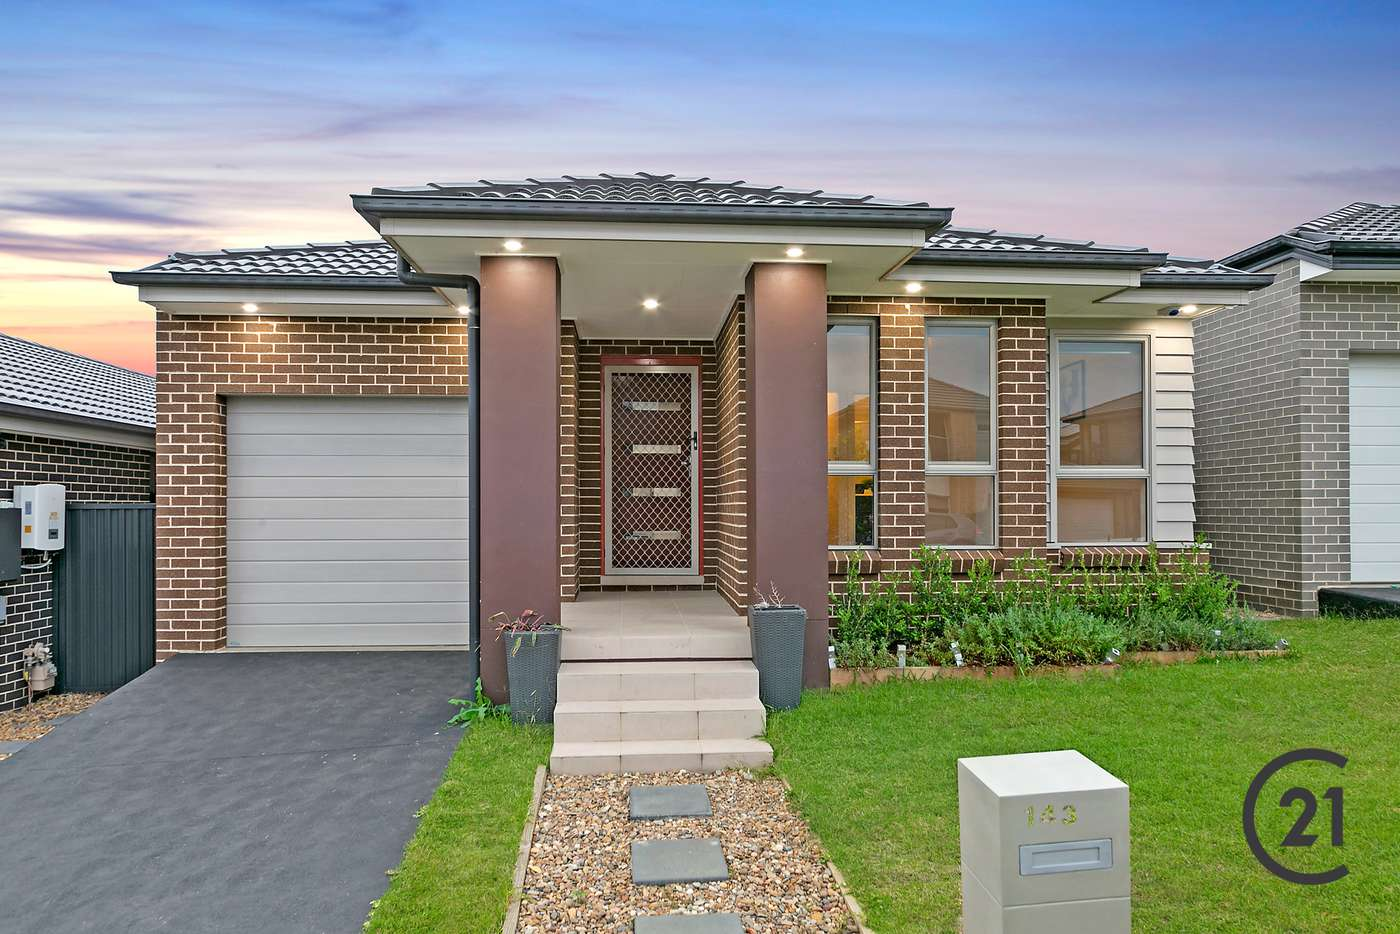 Main view of Homely house listing, 143 Longerenong Avenue, Box Hill NSW 2765